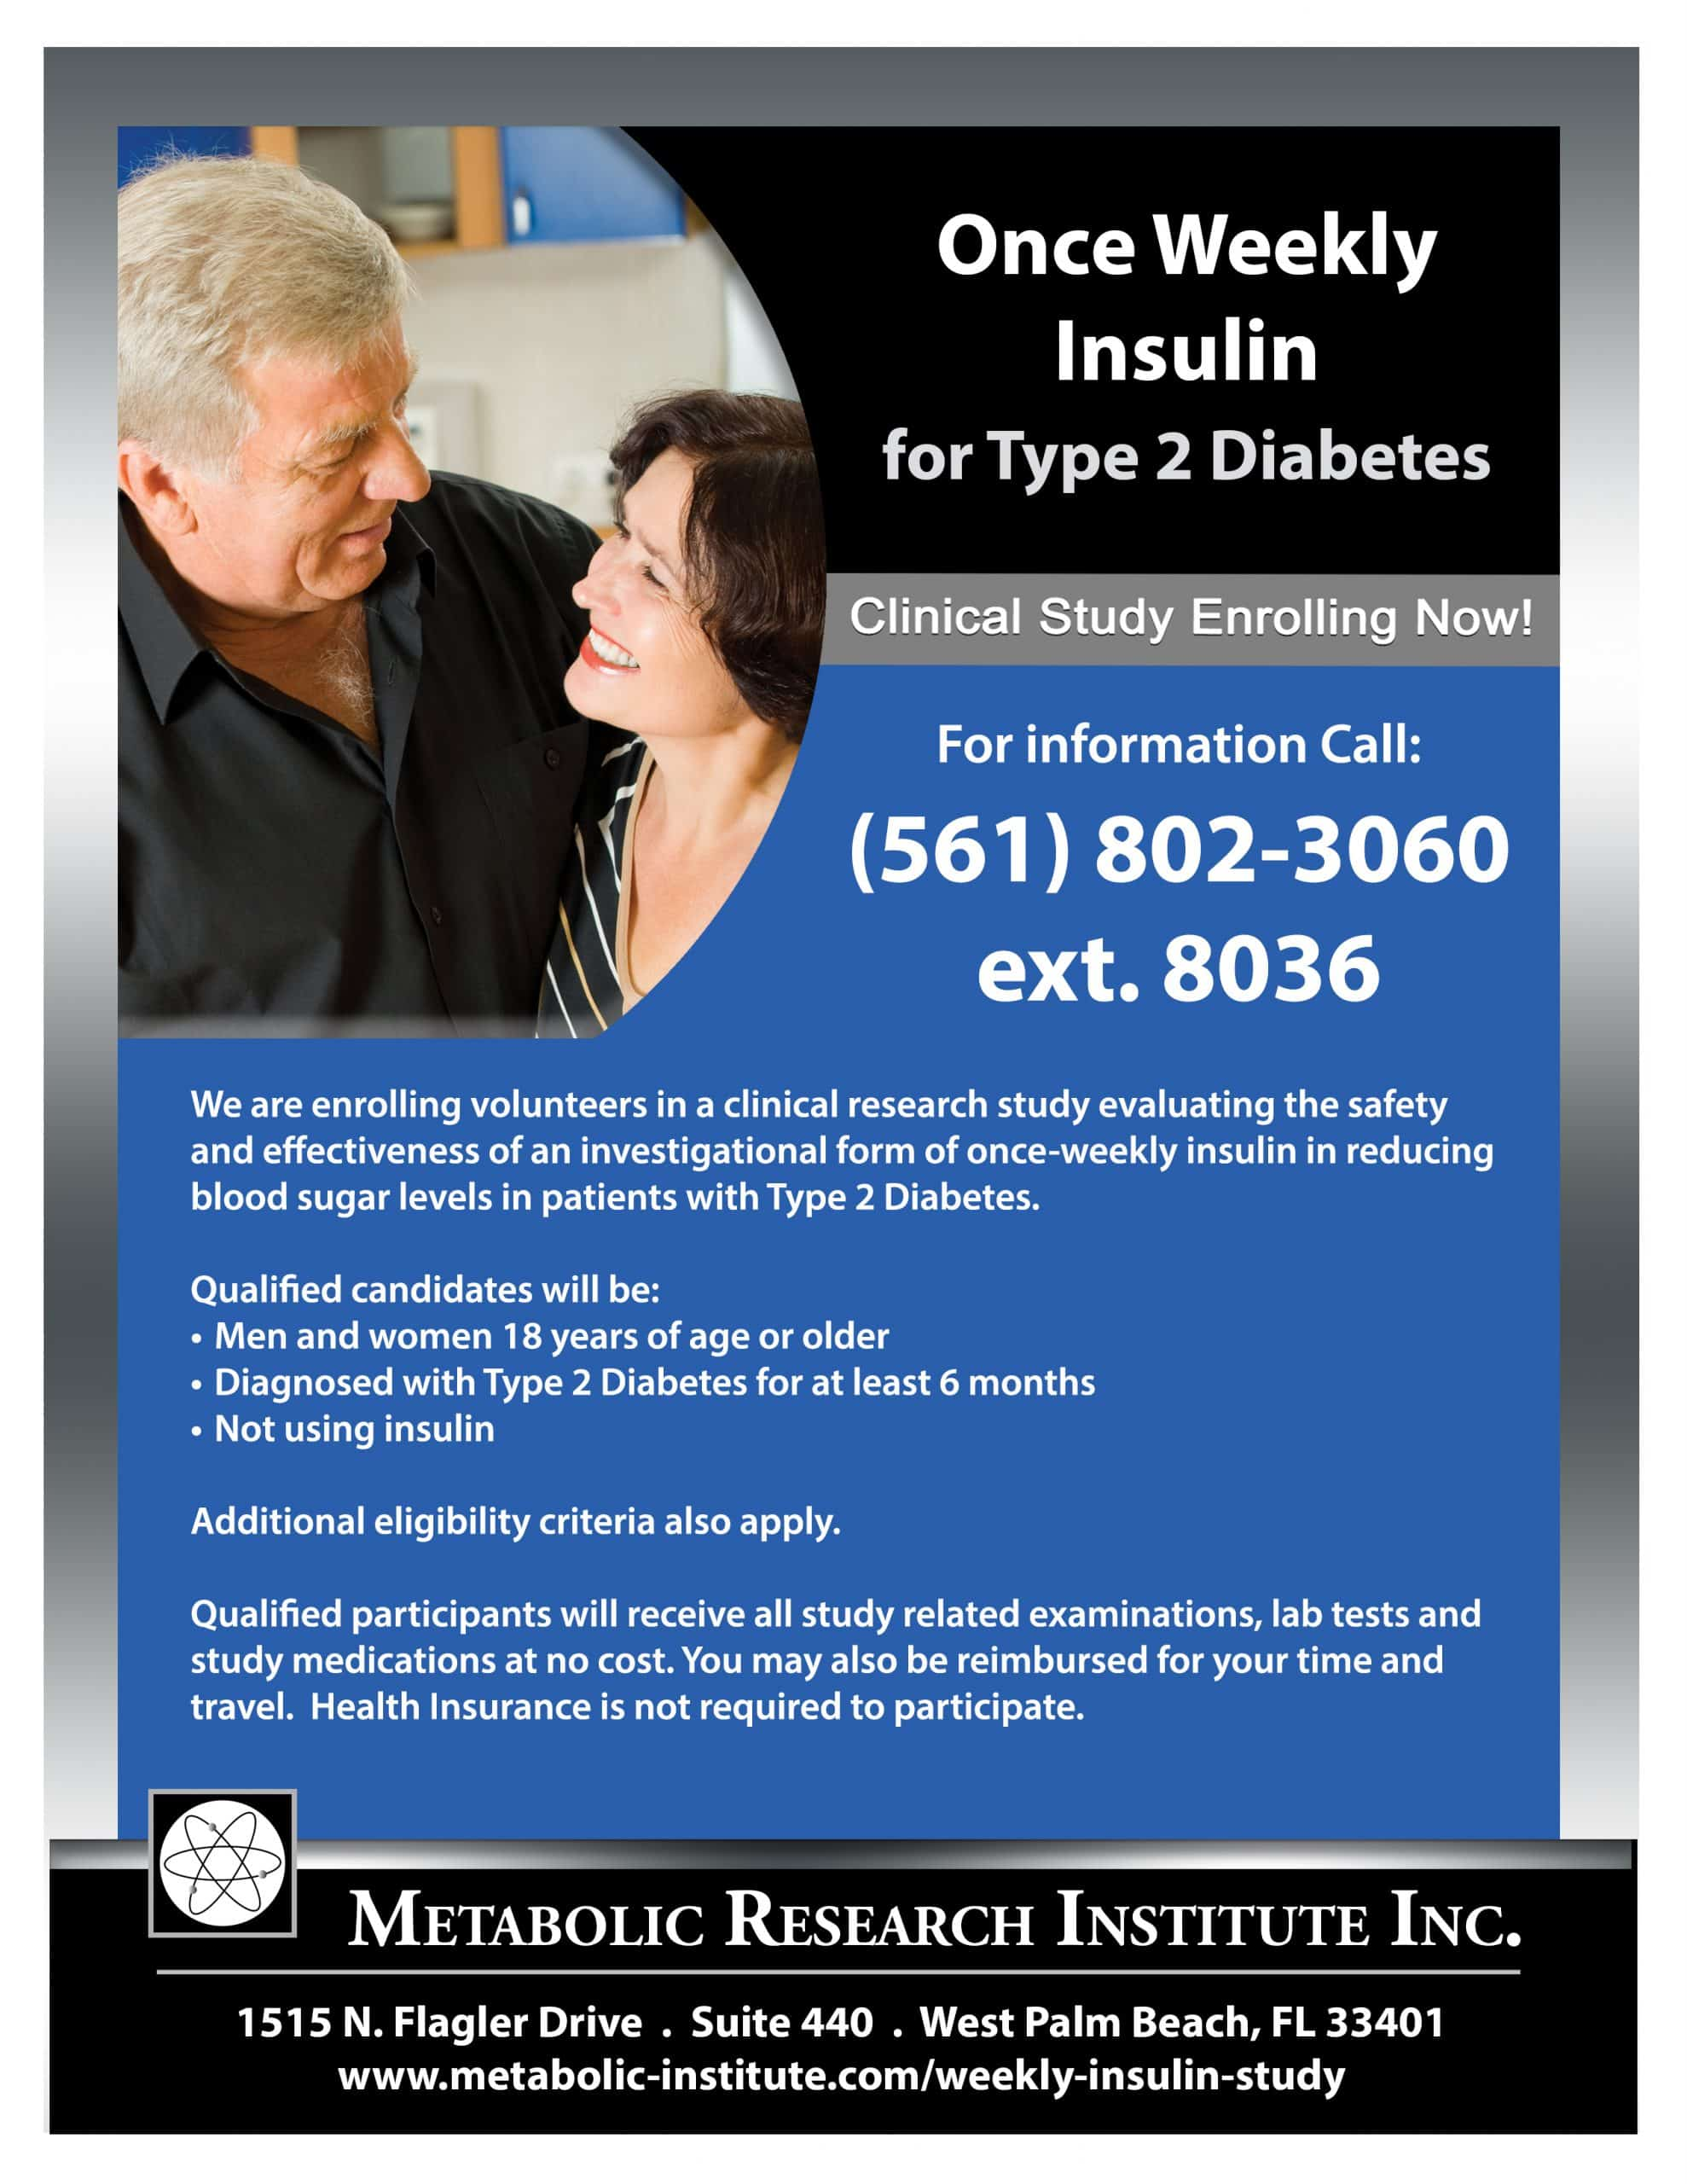 Once Weekly Insulin Clinical Study flyer